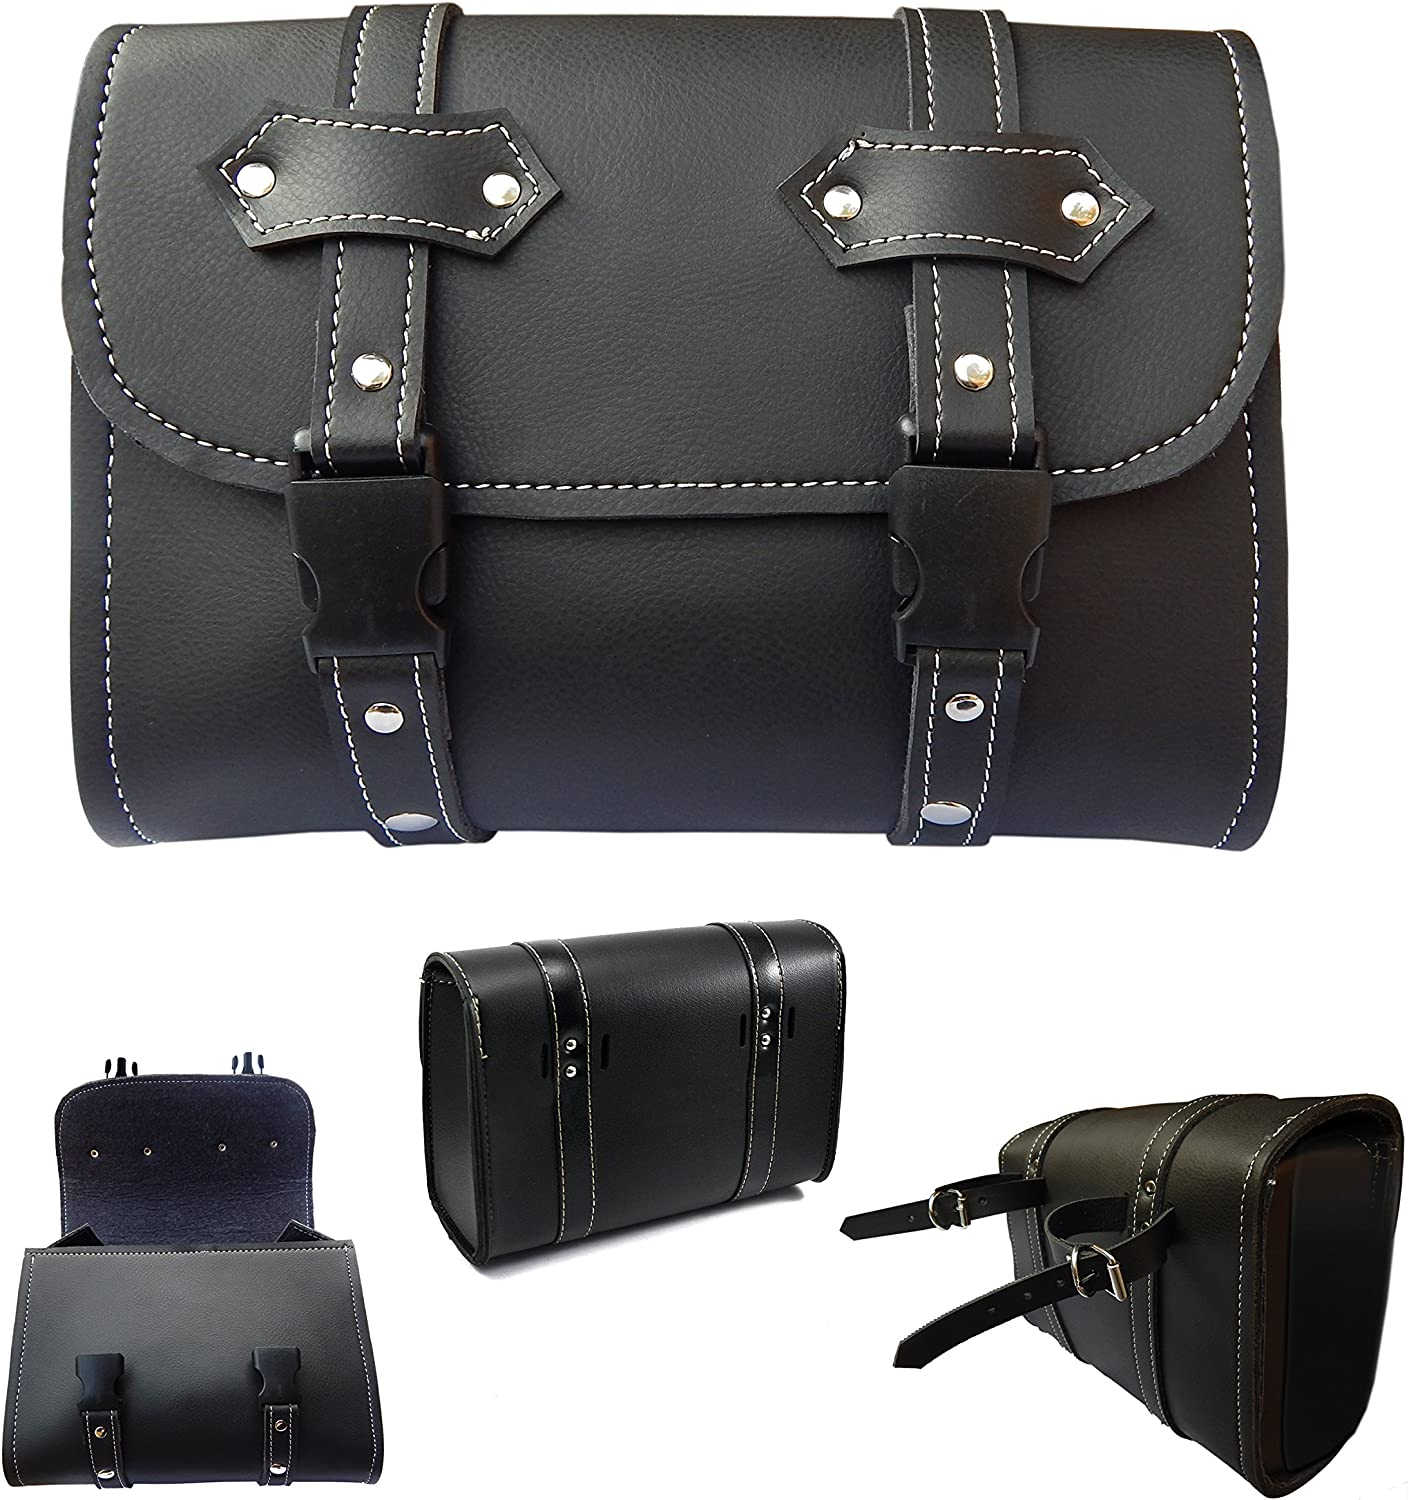 Defy Motorcycle Tool Bag Handlebar Saddle Bag Sissy Bar PU Leather Storage Piped Edges New